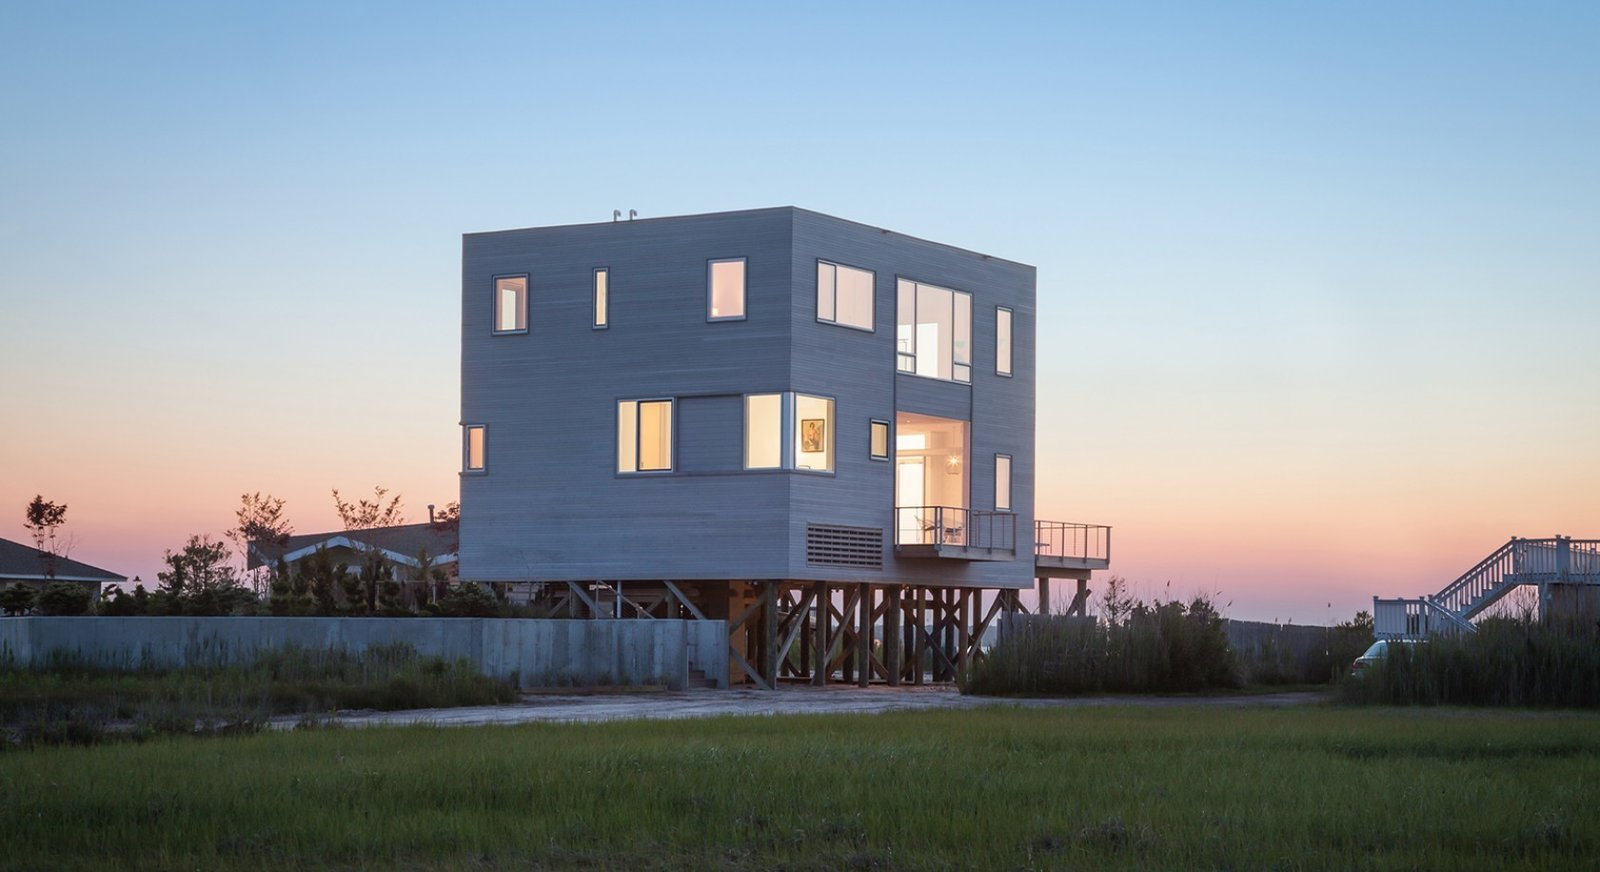 #CubeHouse #cube #exterior #outside #landscape #dynamic #view #deck #staircase #lighting #windows #elevated #levels #Westhamptonbeach #NewYork #LeroyStreetStudio   Cube House